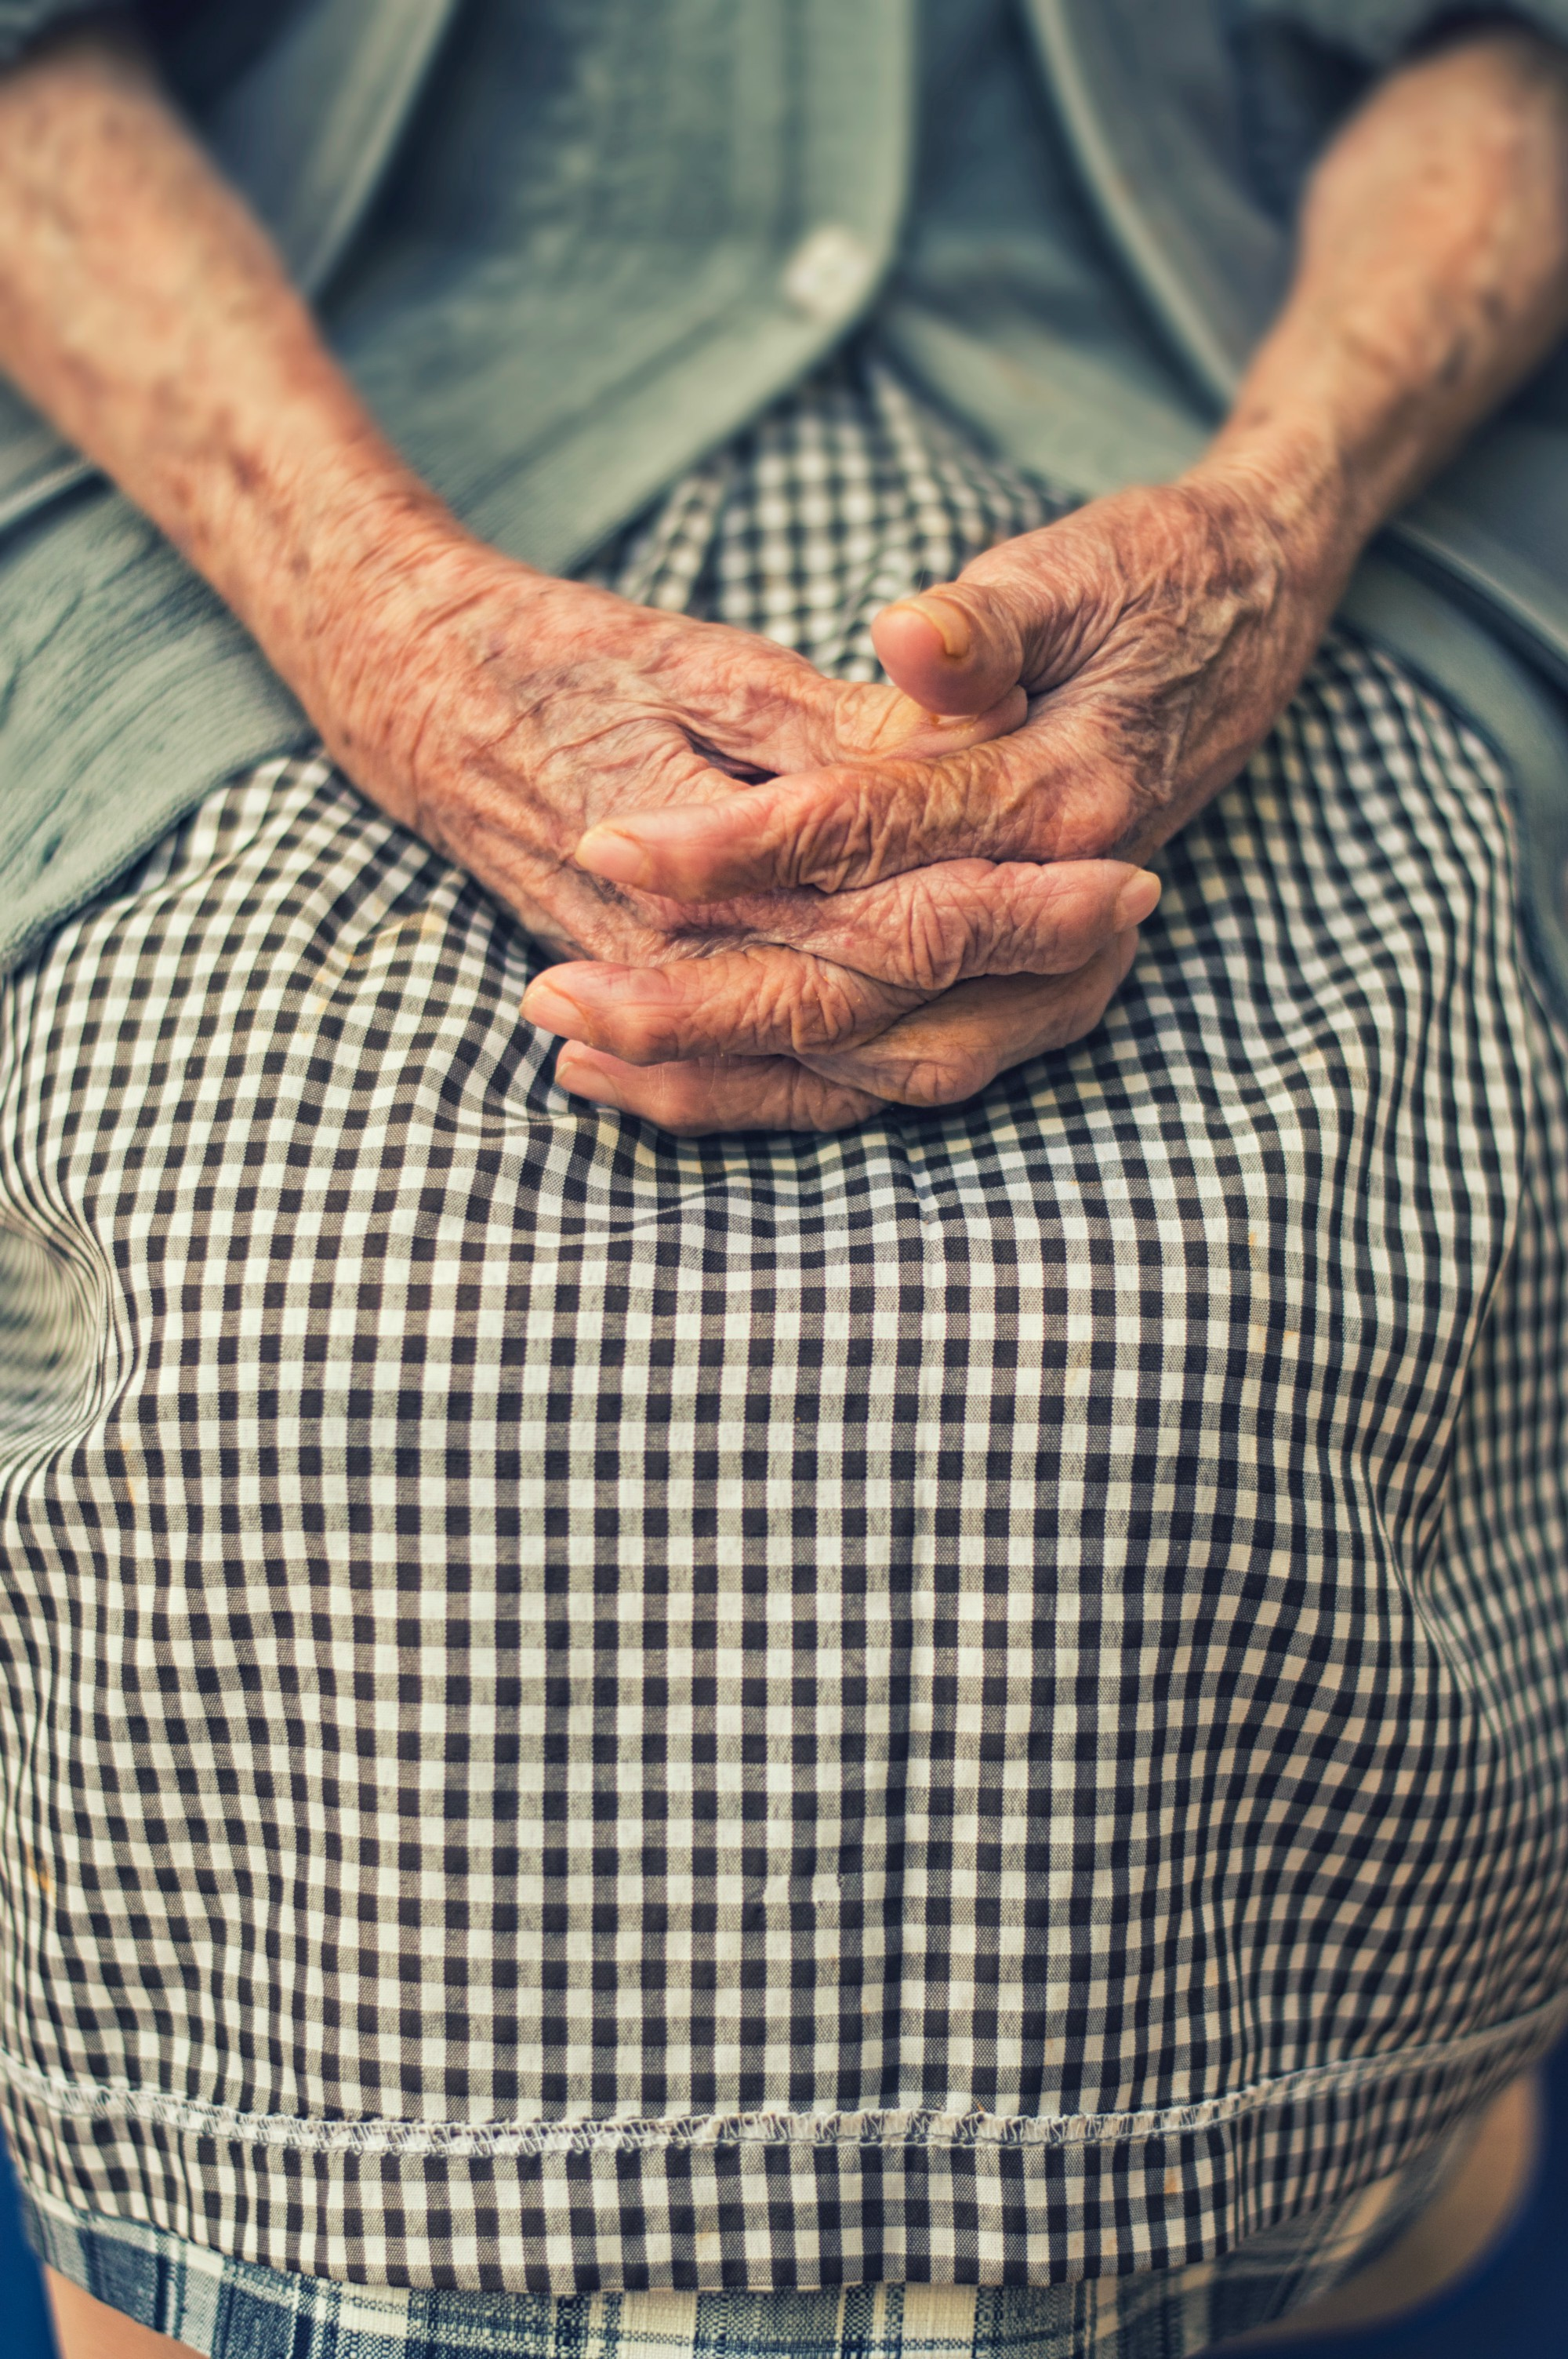 A close up picture of an elderly woman's hands as they rest in her lap